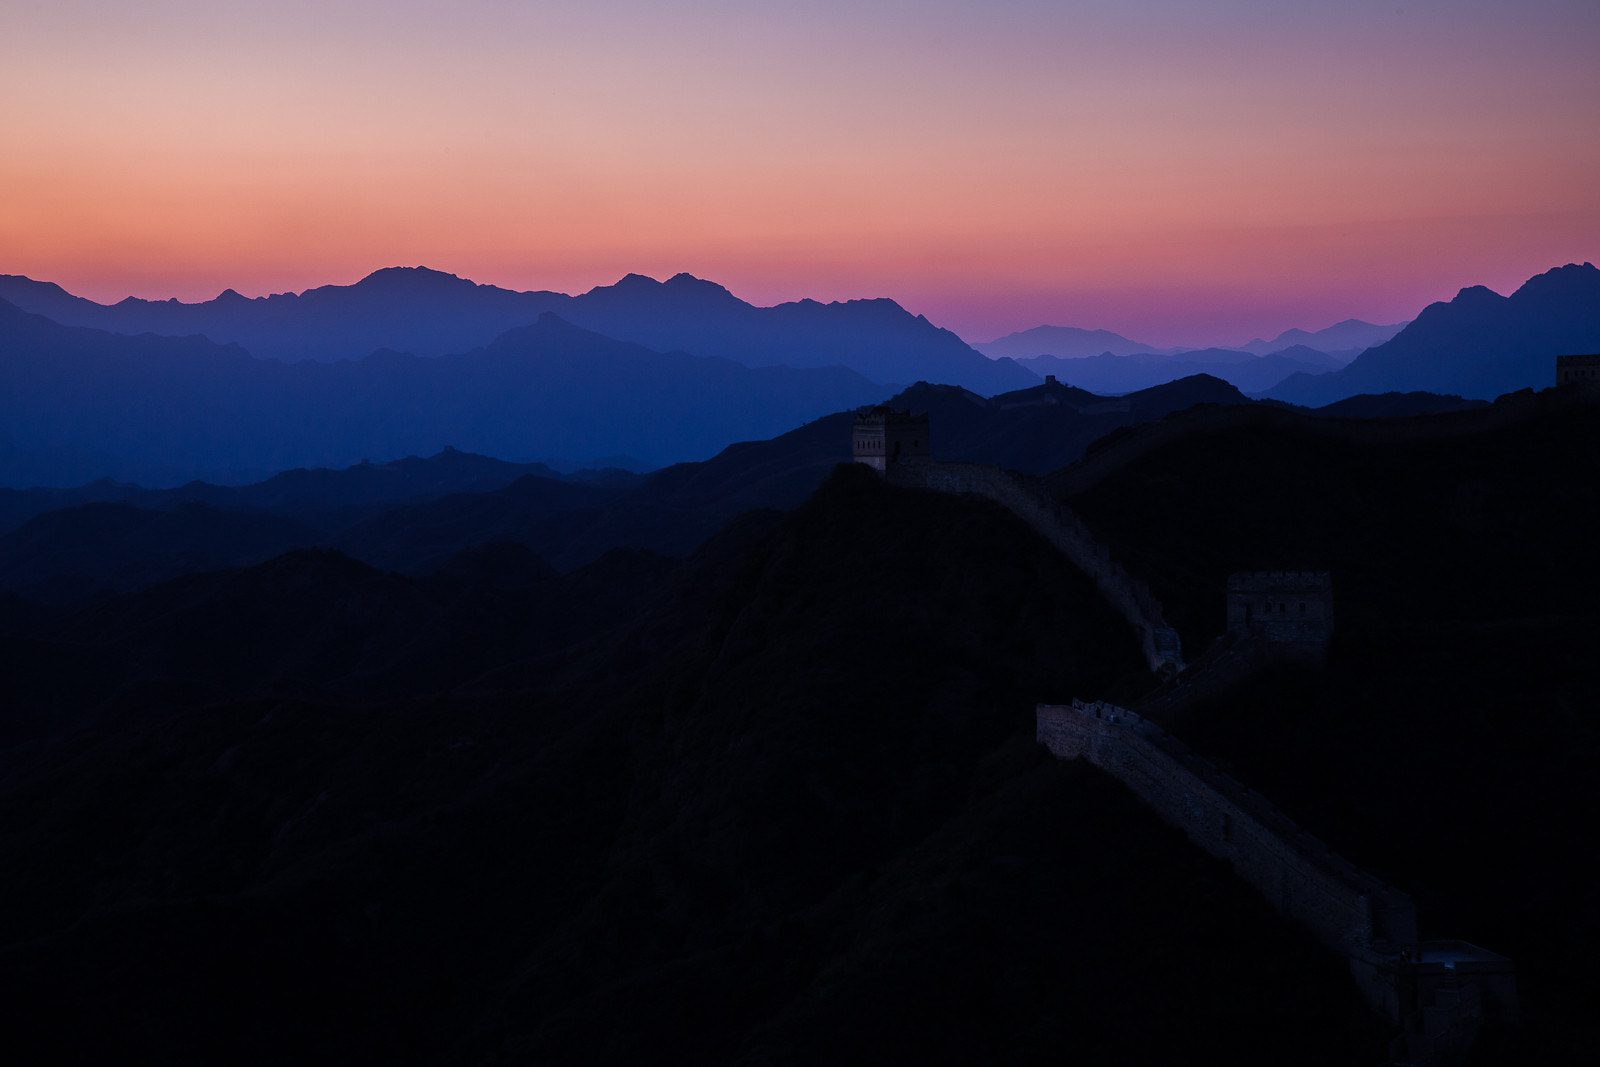 Photograph Great Wall at sunset by Marton Apai on 500px